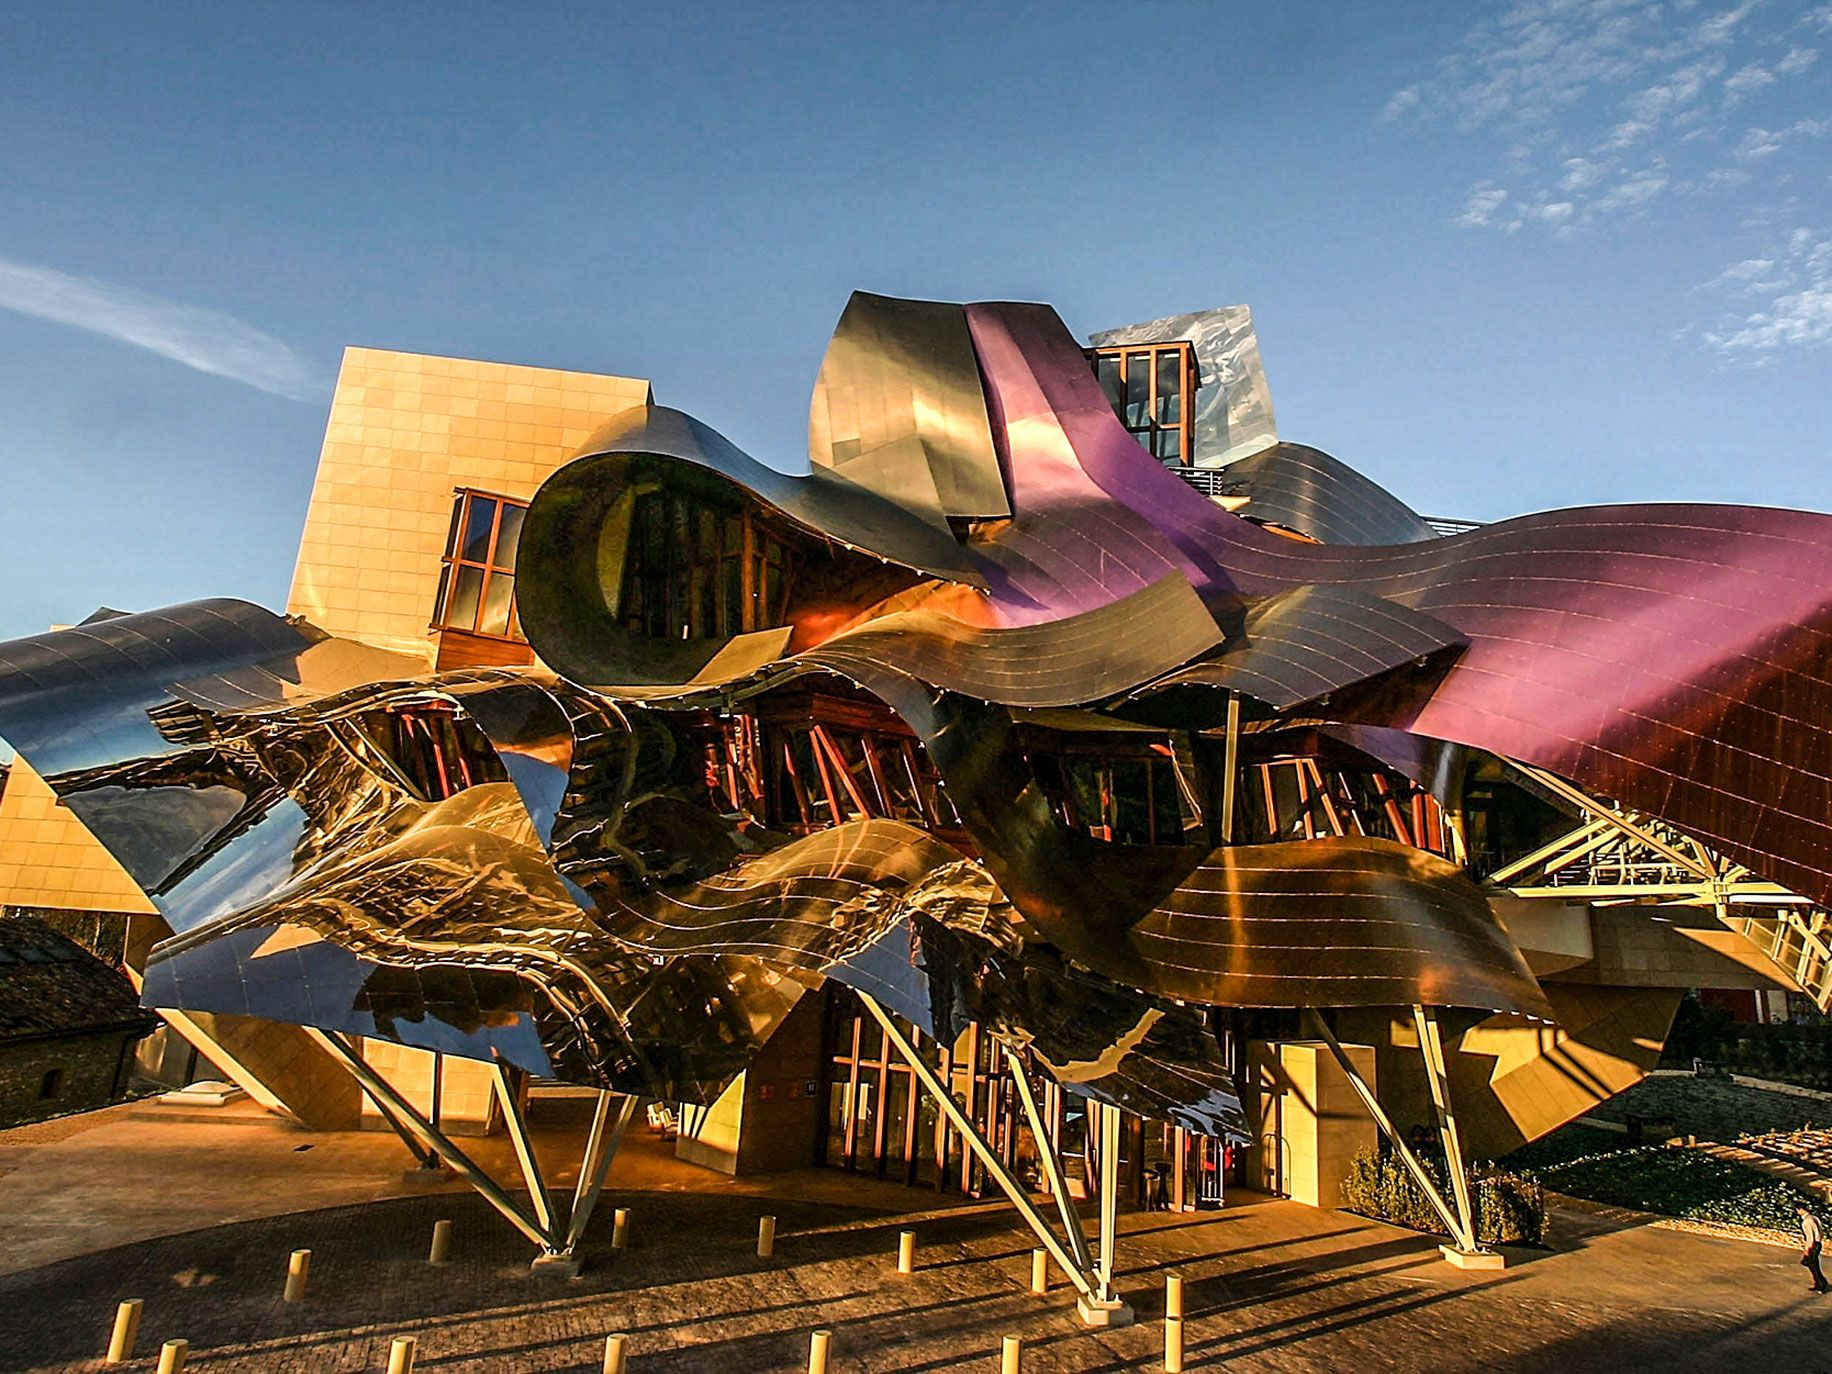 The final structure of the Marqués de Riscal Hotel in Spain bears an obvious resemblance to the quick sketches.